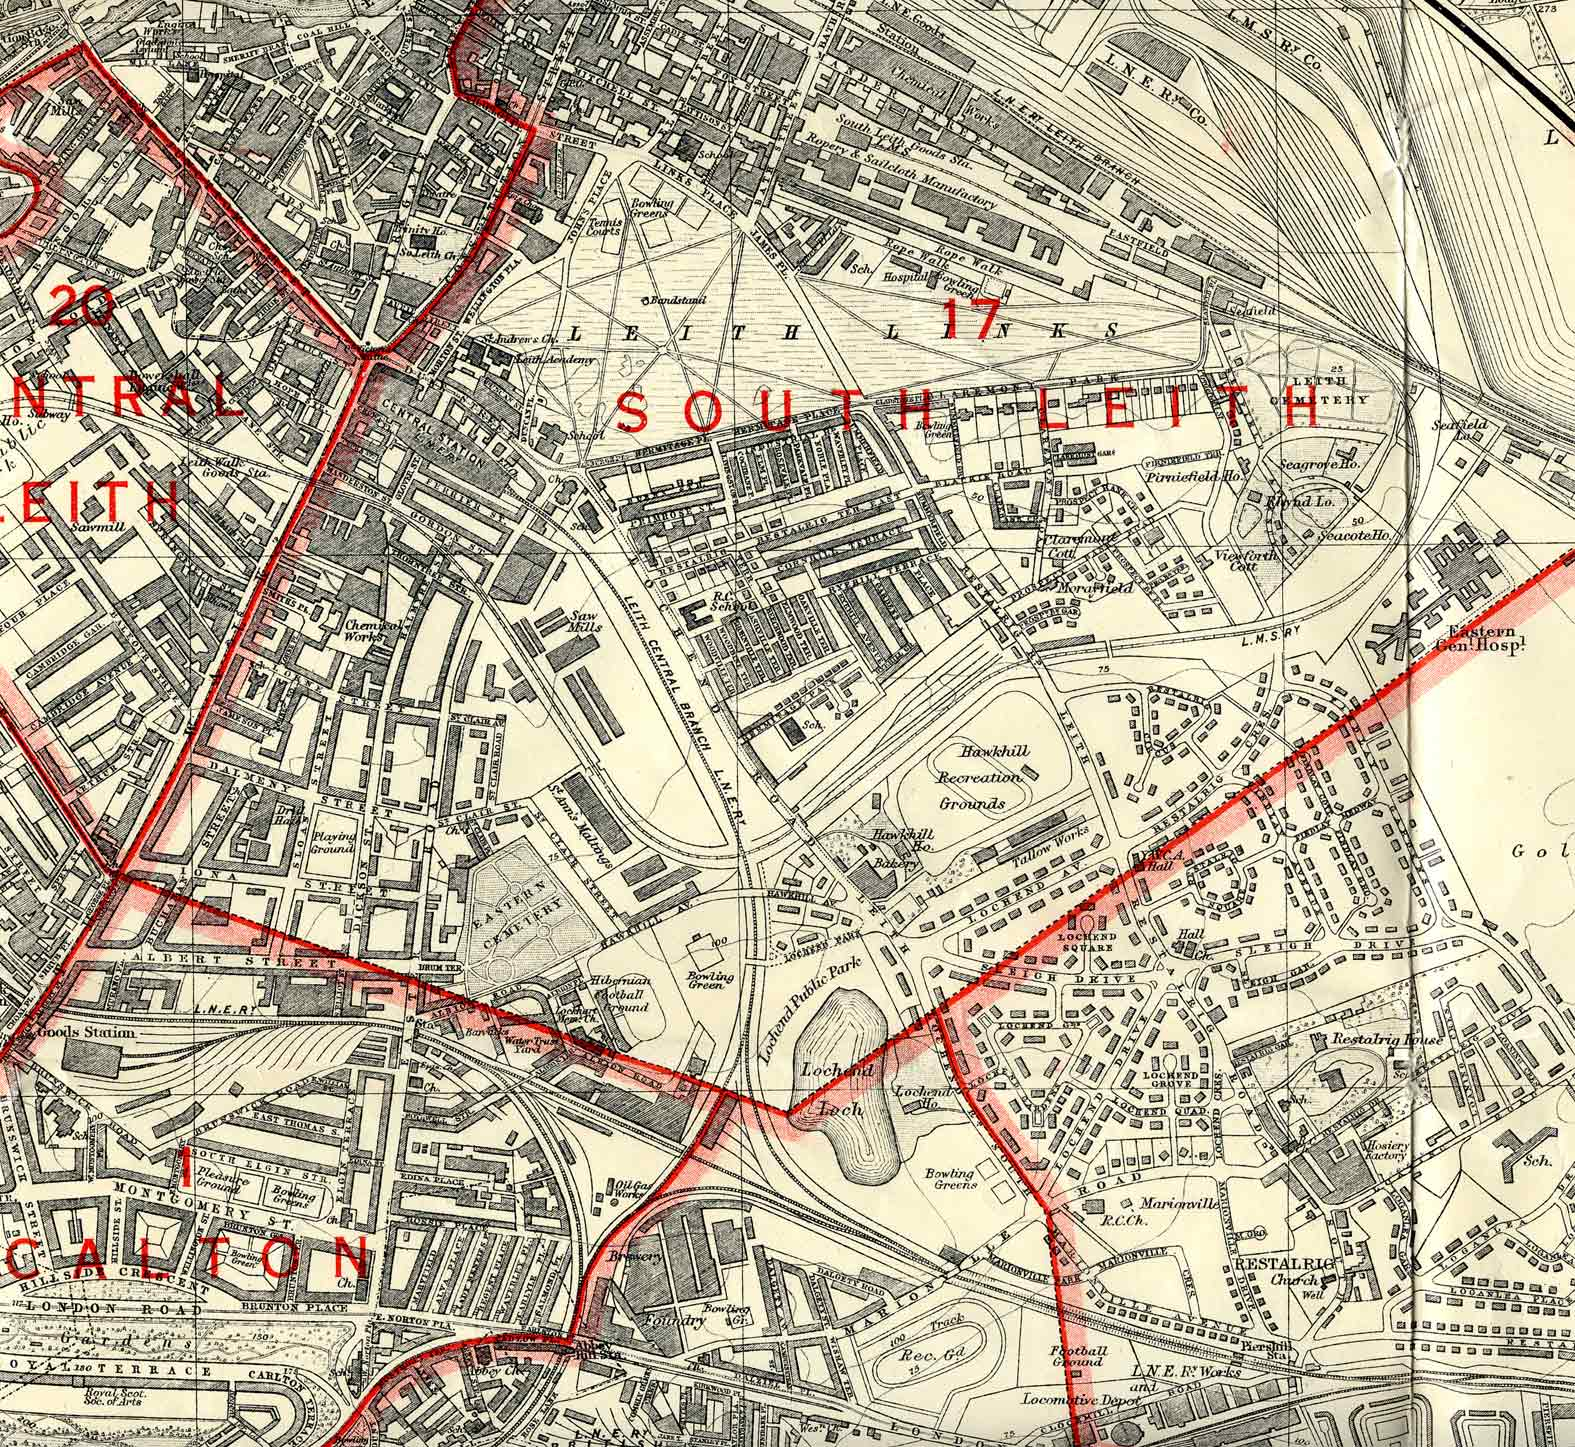 Edinburgh and Leith map, 1940  -  North-east Edinburgh section